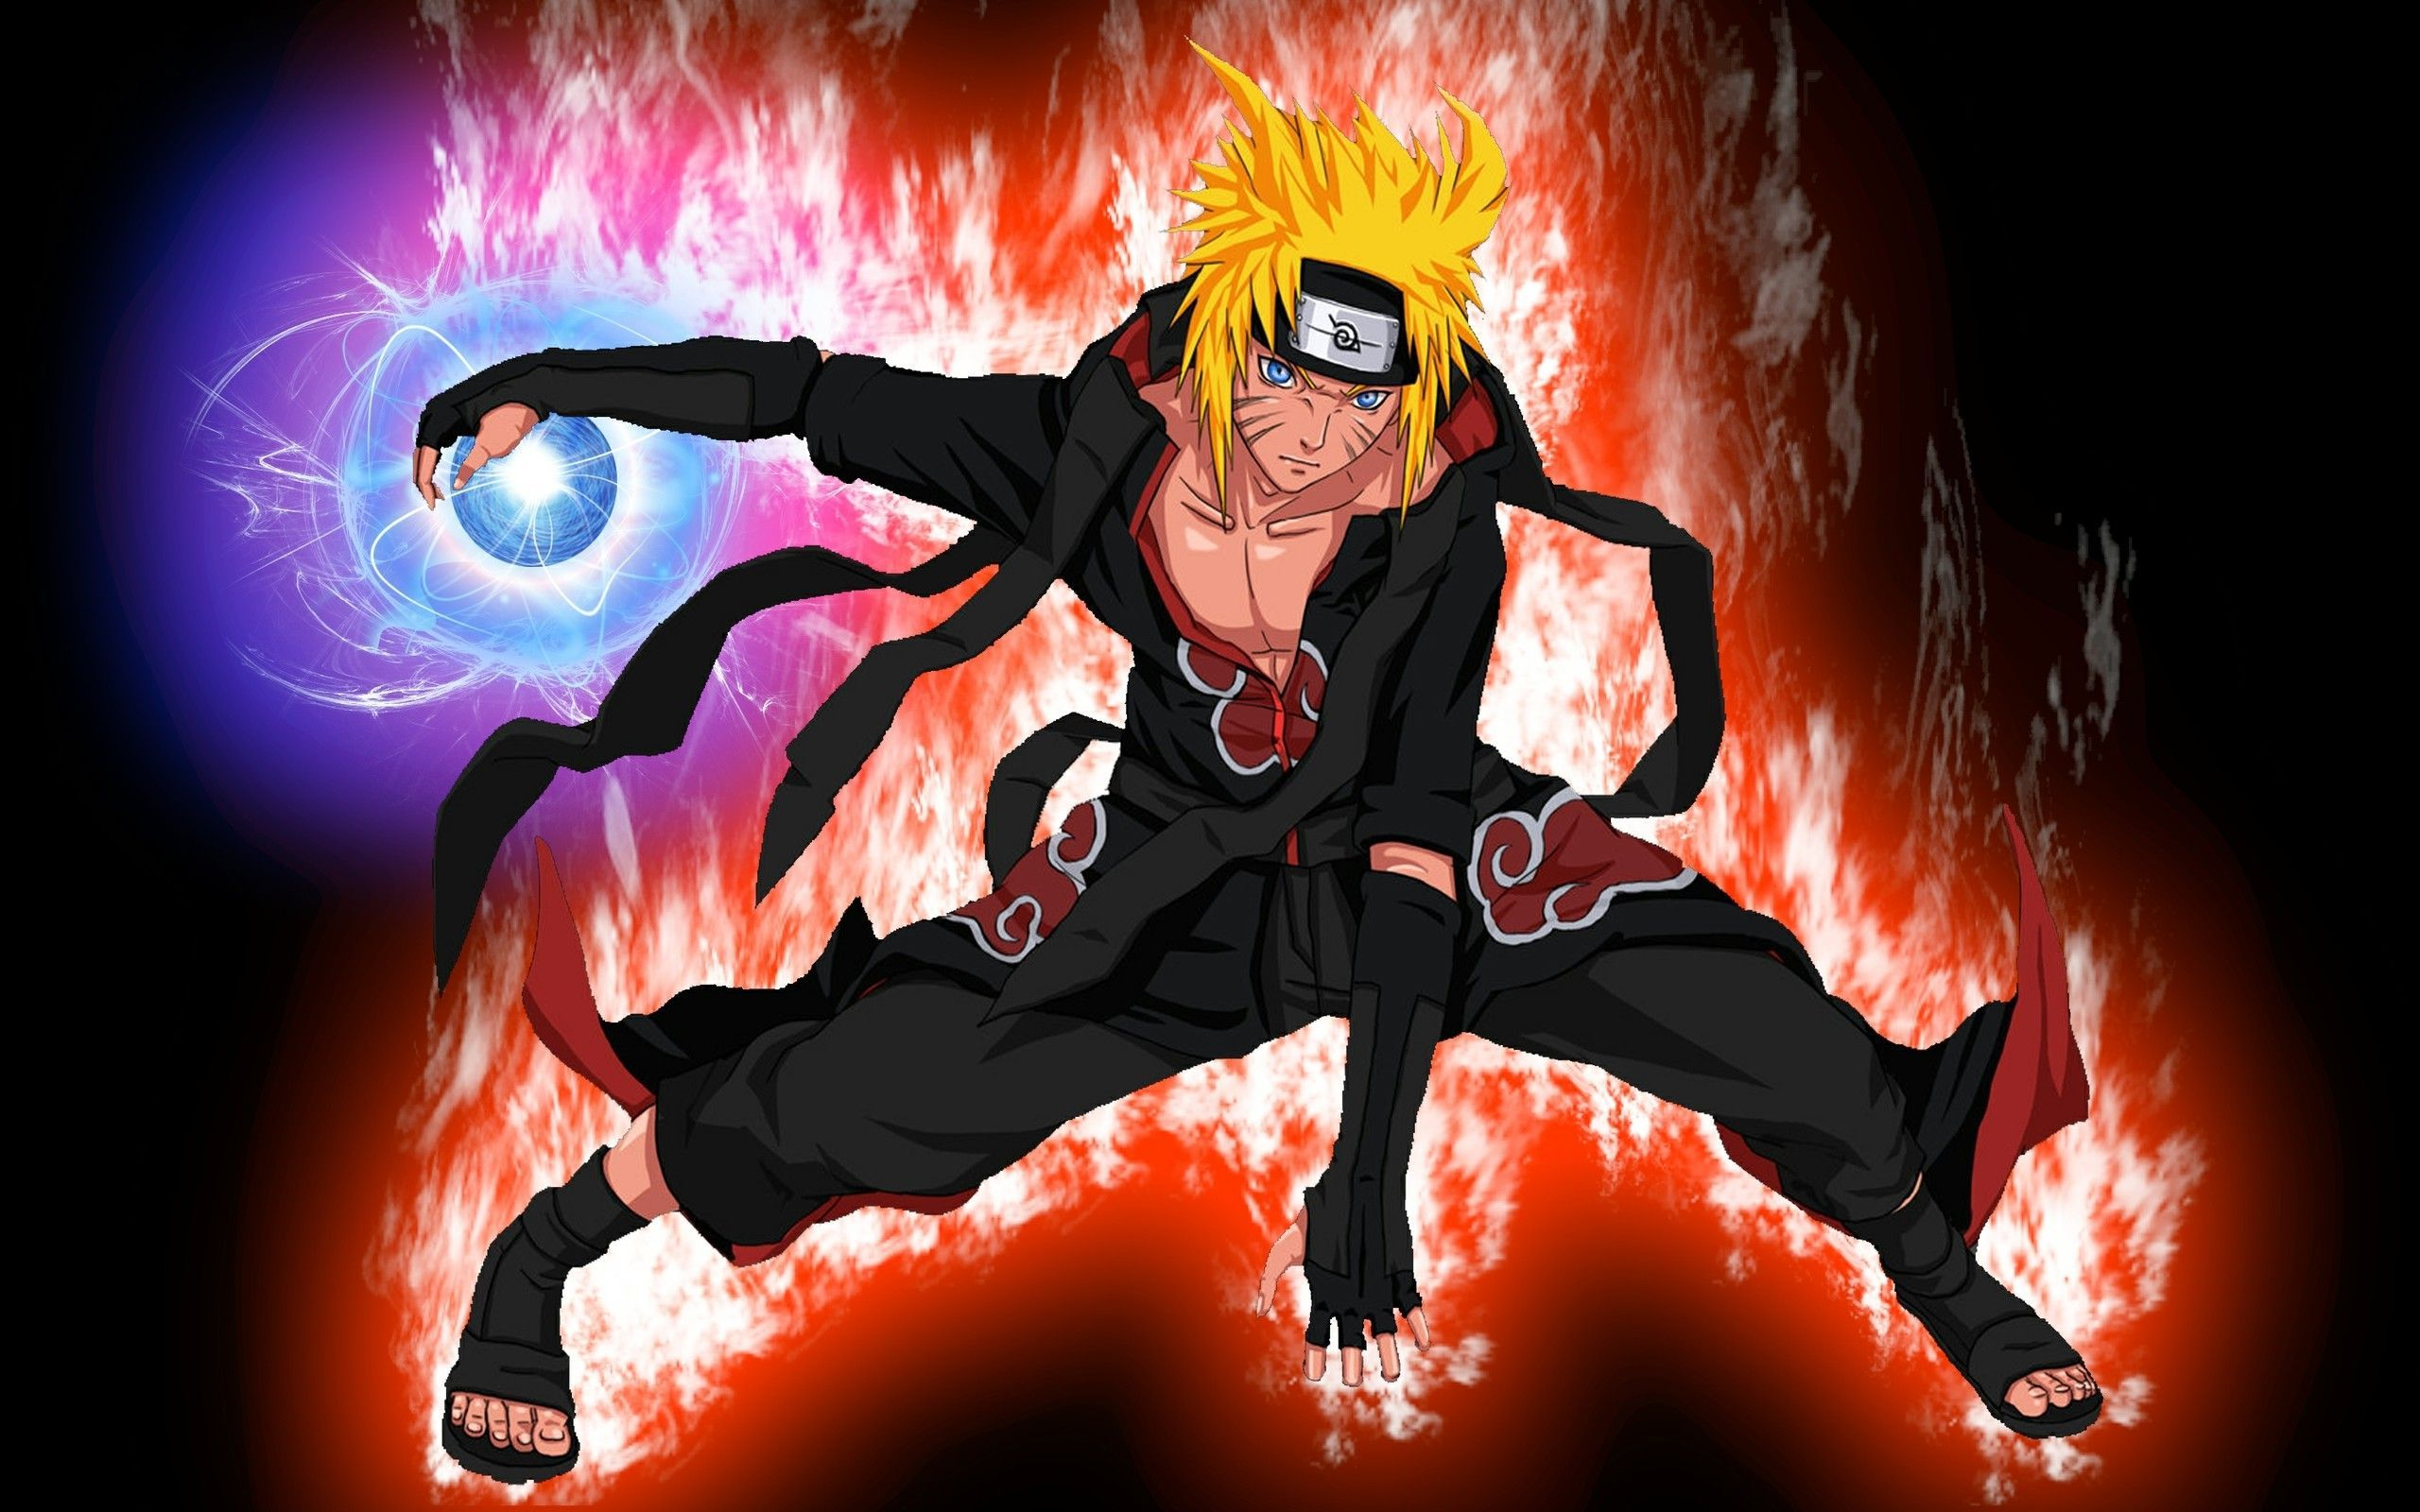 Naruto Shippuden Wallpaper For Mobile Phone Tablet Desktop Computer And Other Devices Hd And In 2021 Wallpaper Naruto Shippuden Naruto Shippuden Hd Naruto Wallpaper